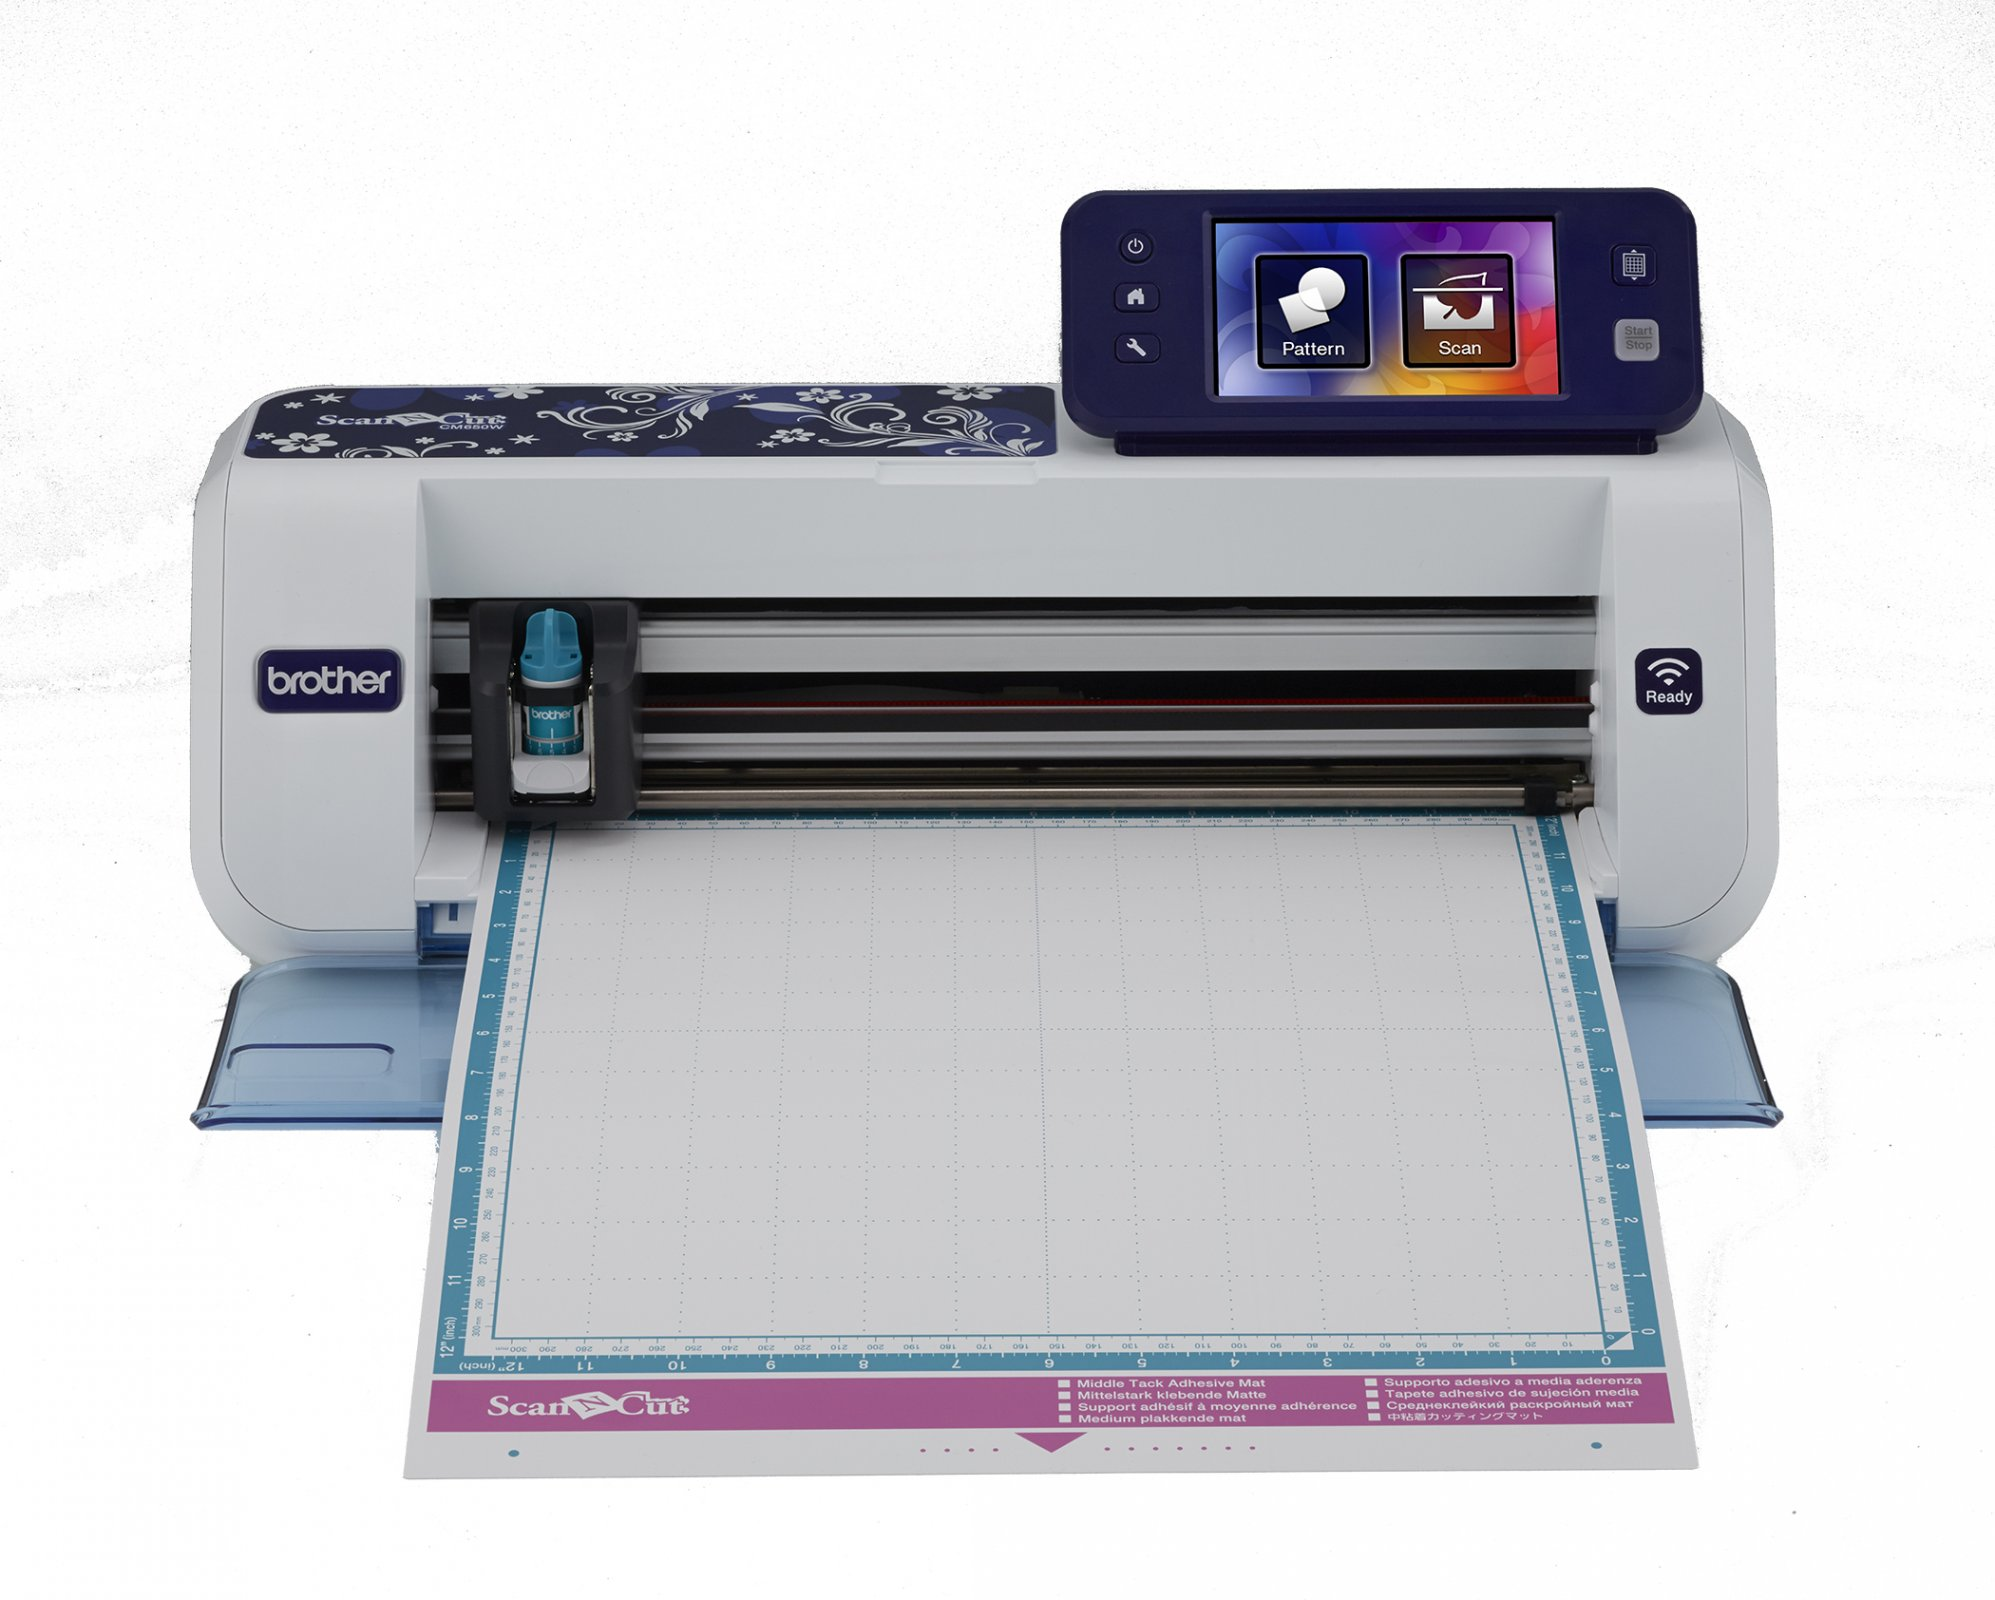 Brother Scan N' cut 2  * 1,102 built-in designs  * 140 applique' designs  * Back ground scan  * scan to cut  * direct cut  * on screen editing and lots more